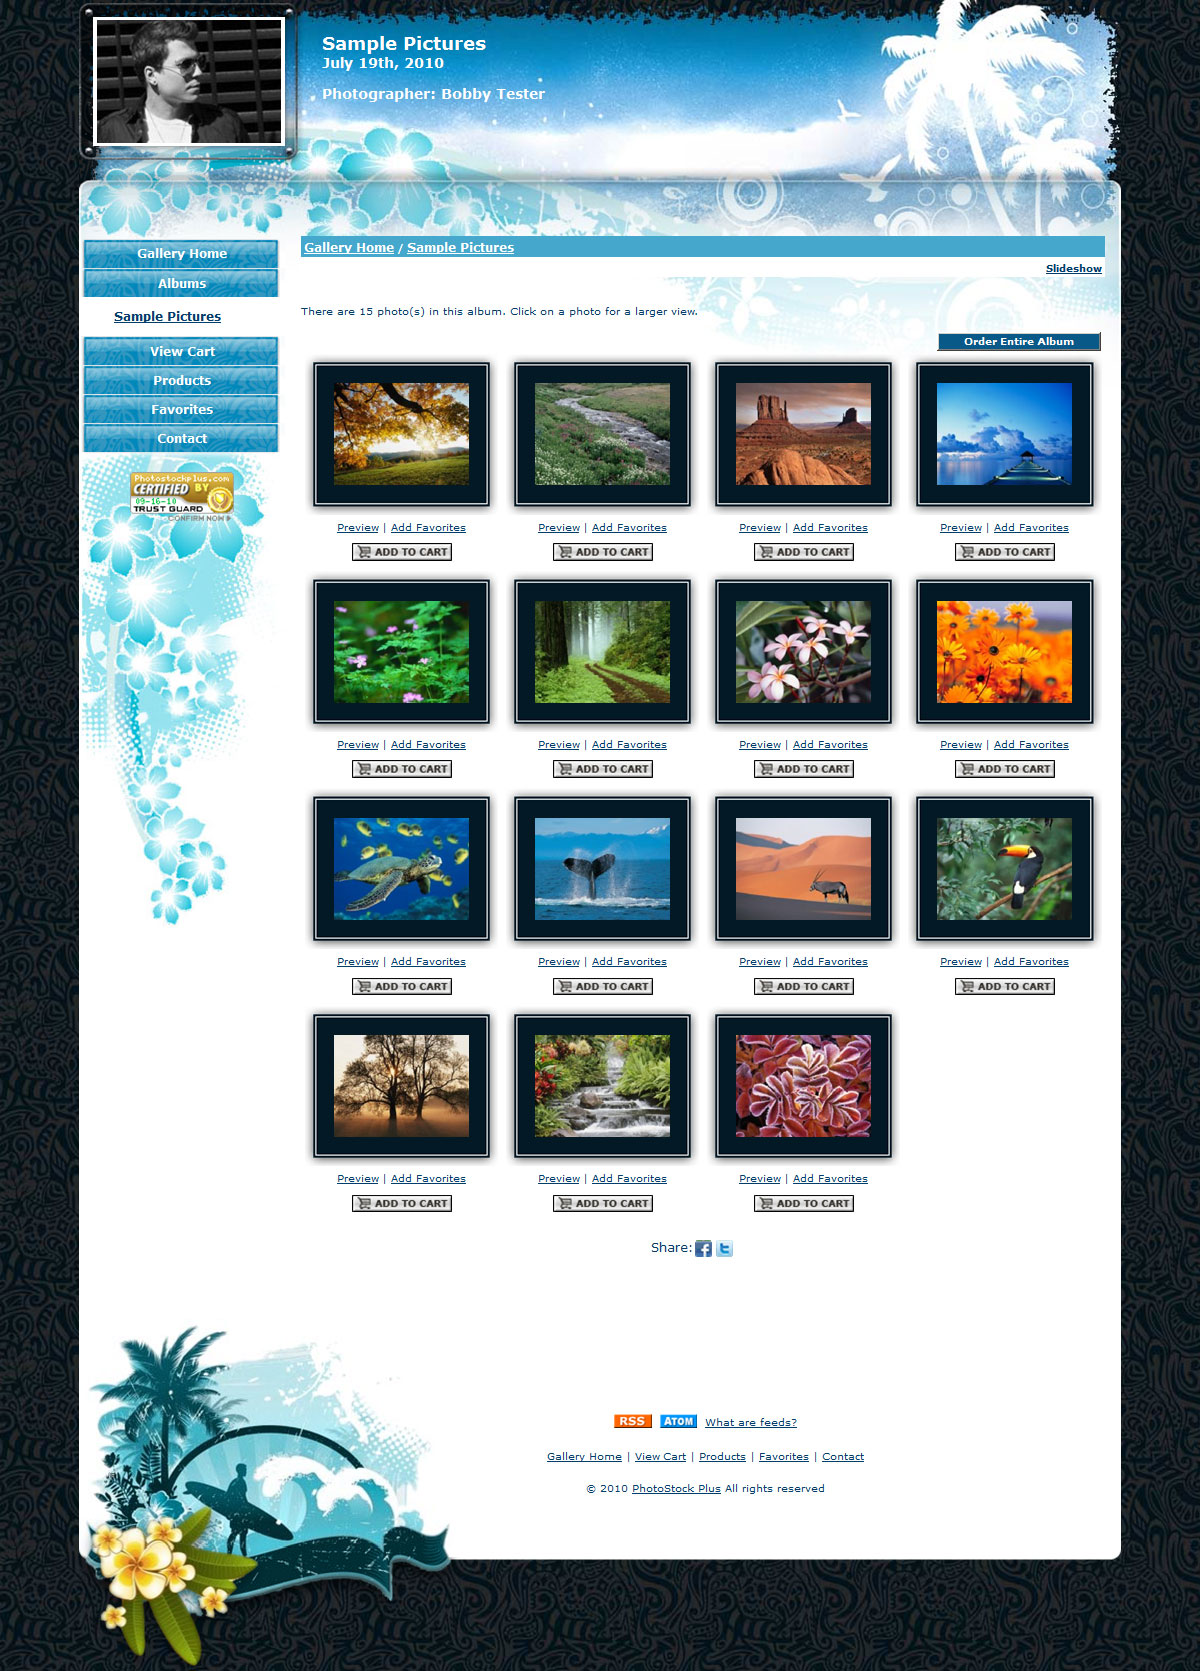 Storefront Windsurfing 160910 2 New Storefront Templates Available!